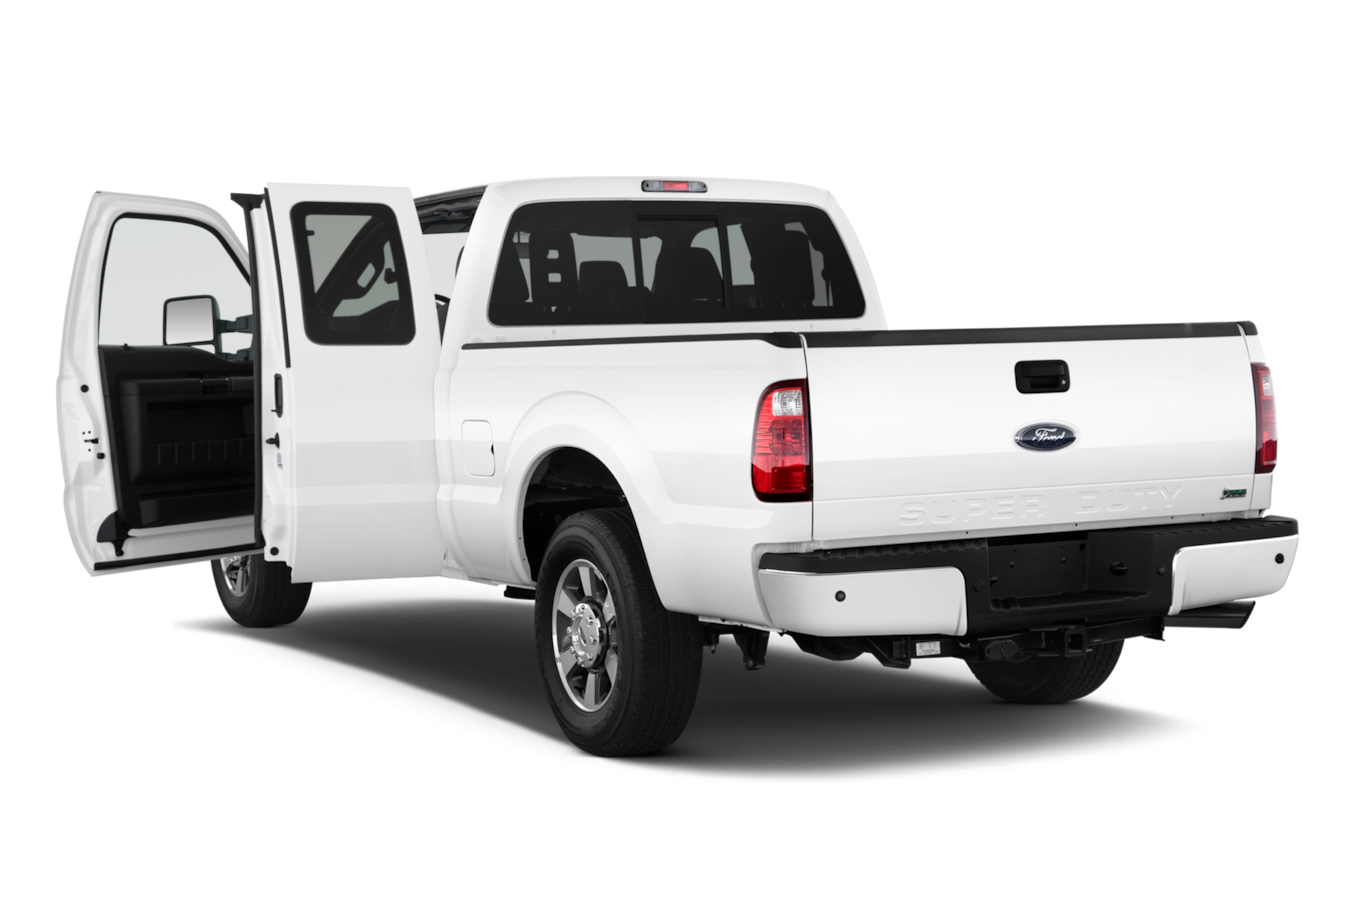 ford f350 6.2 review